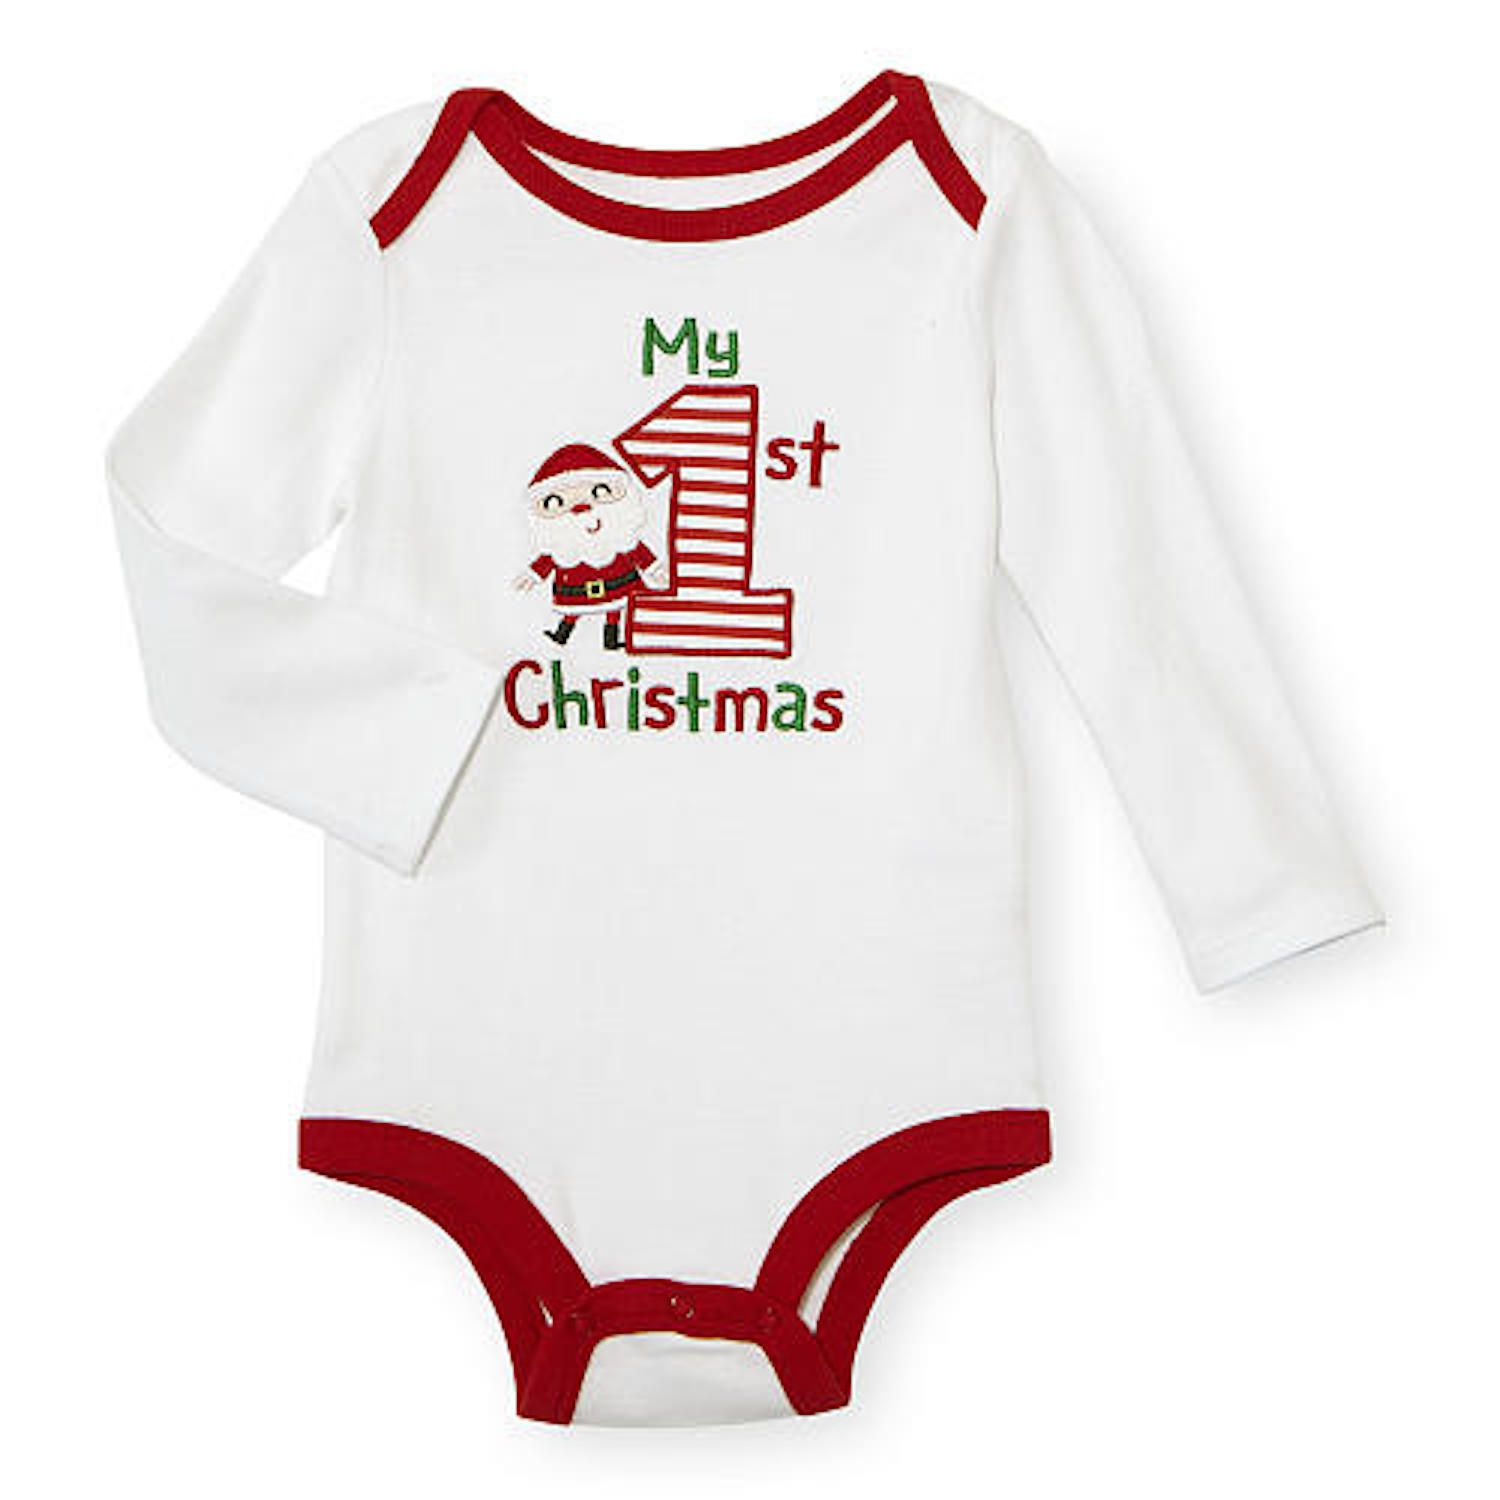 20 Adorable Baby s First Christmas Outfits